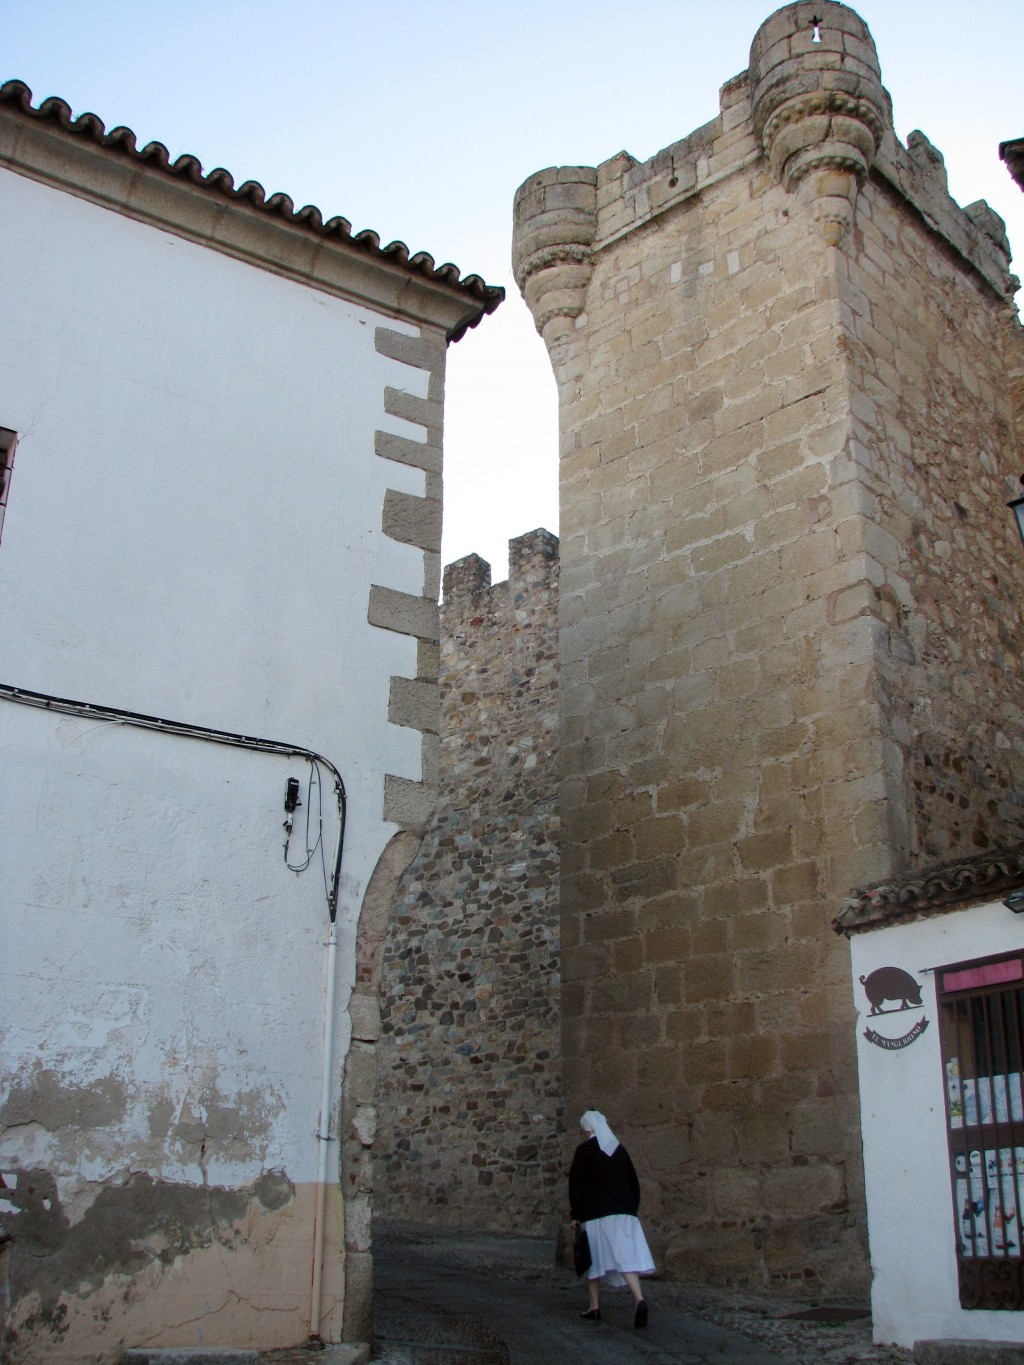 This Oct. 27, 2017 photo shows a nun walking into the walled monumental center of Caceres, one of the most monument-filled, tourist-empty cities in Sp...